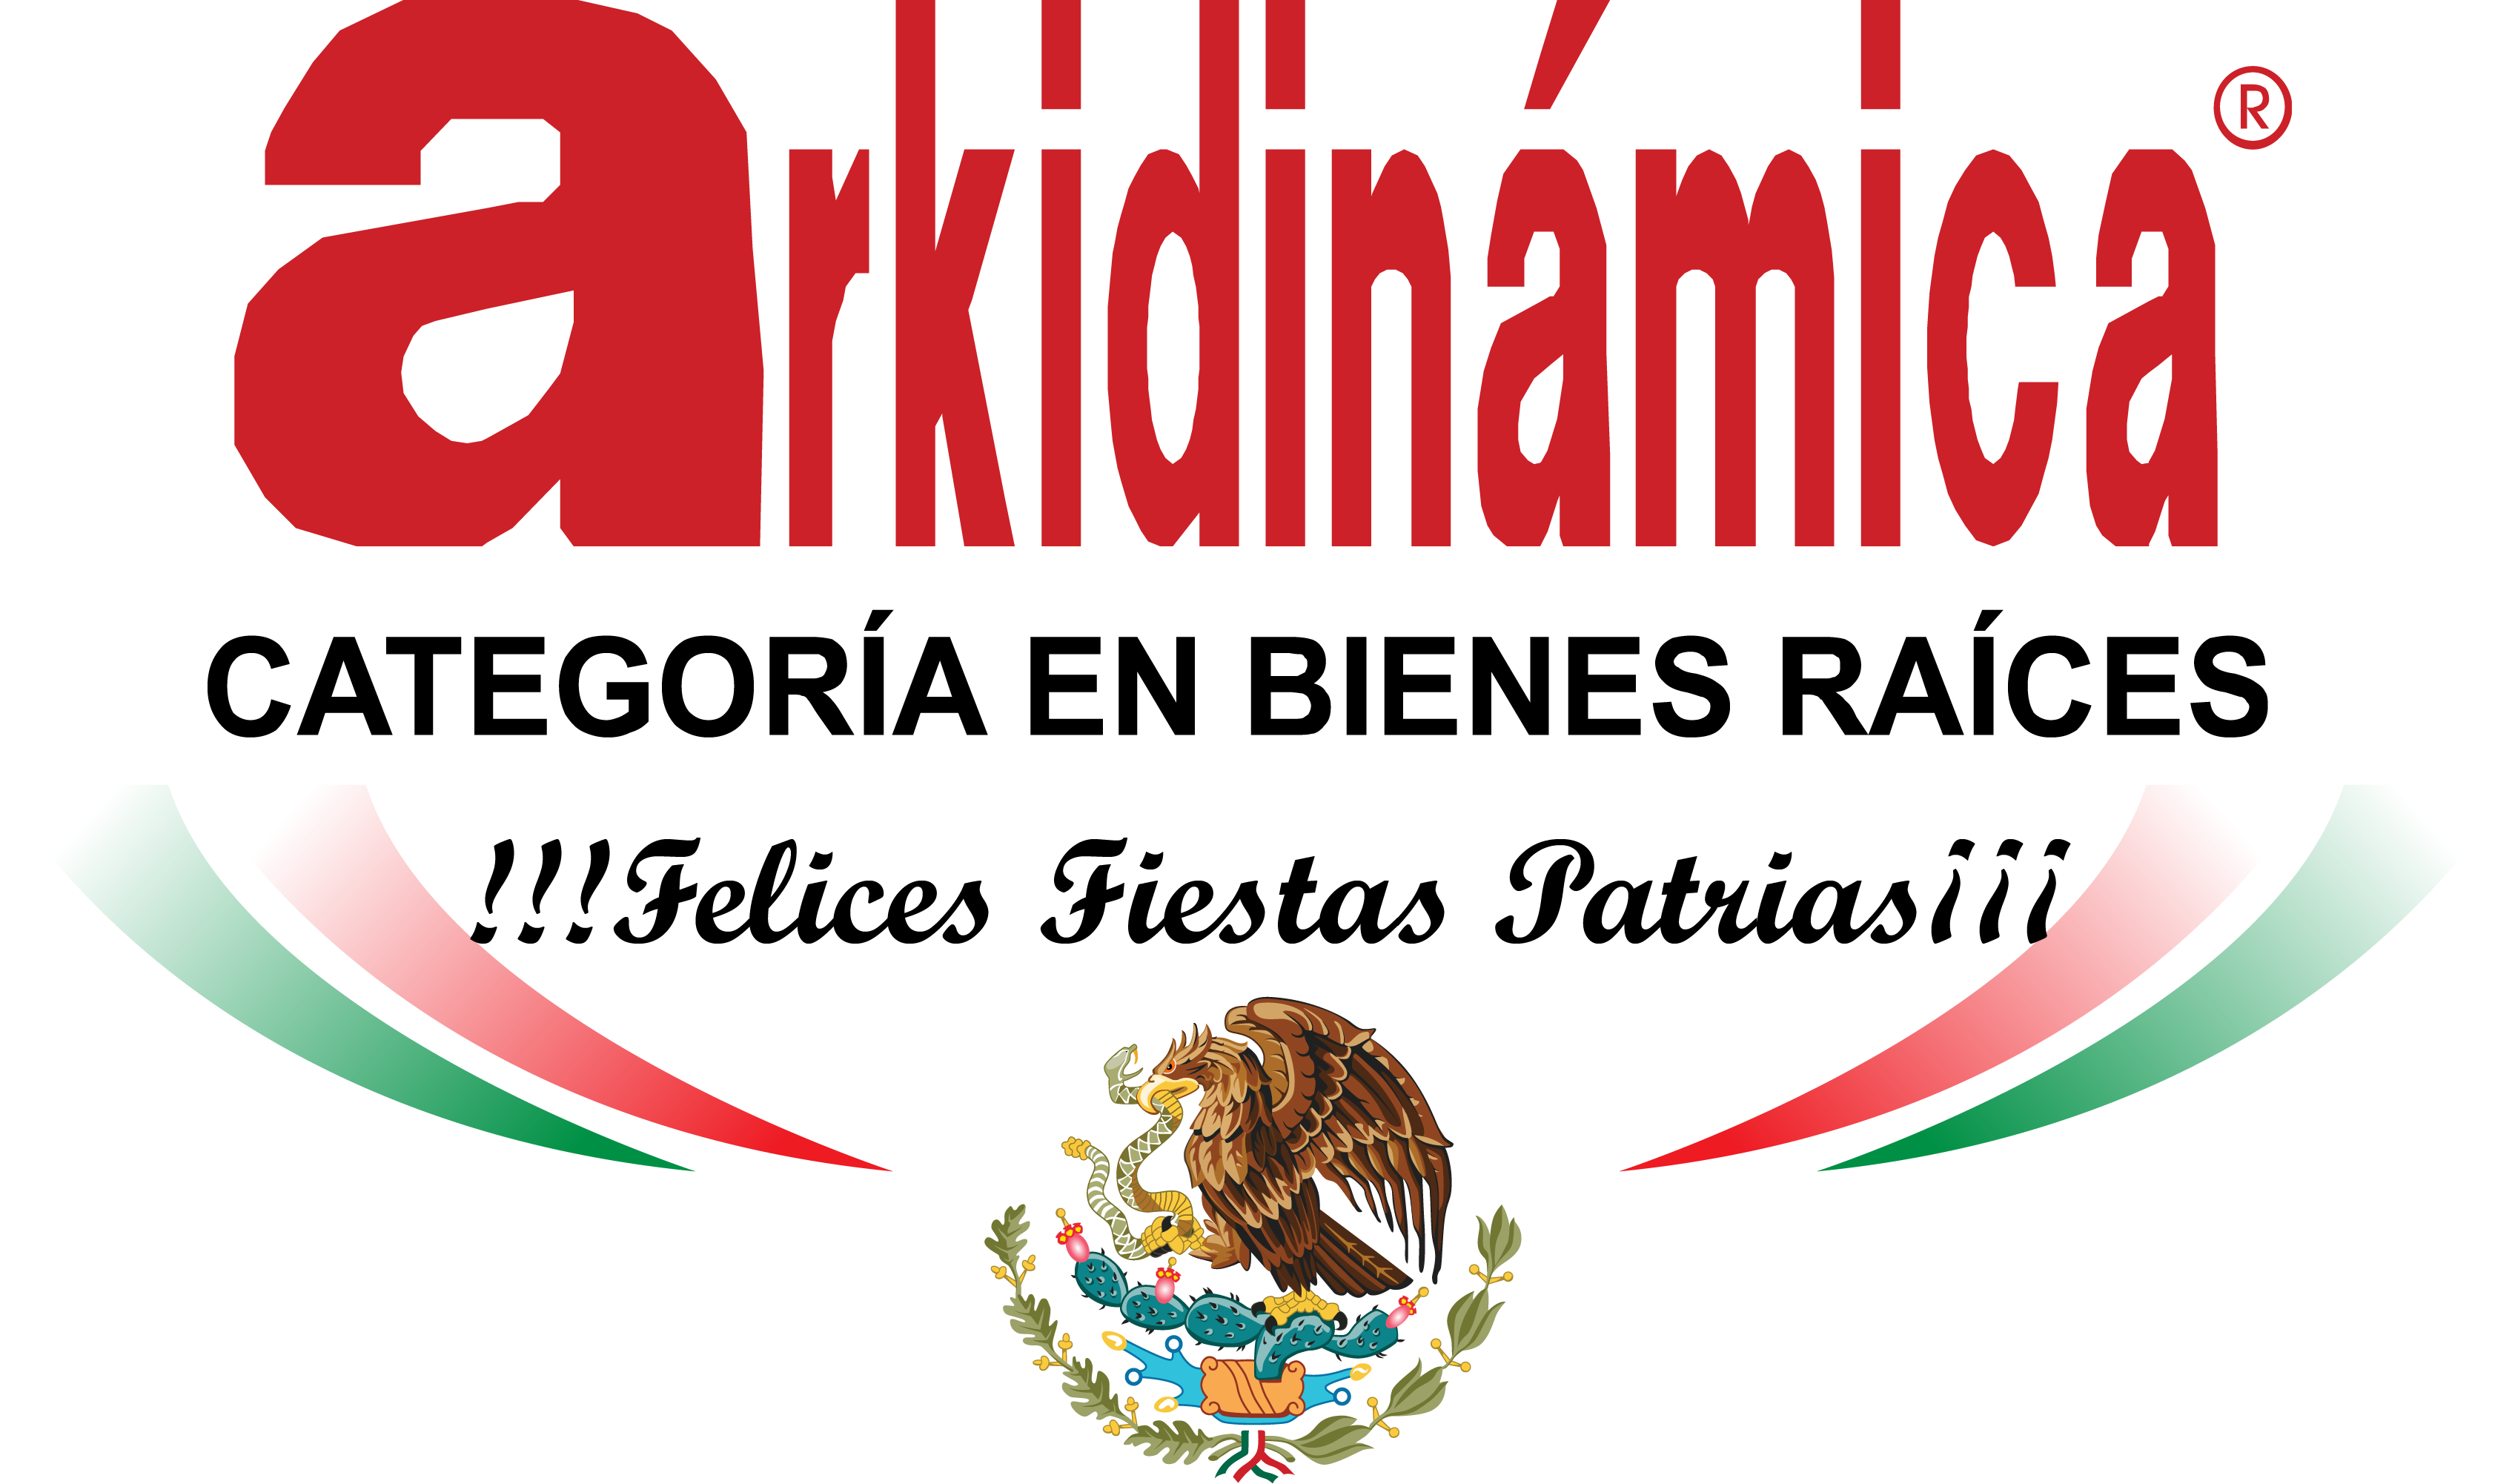 Logo_Arkidinamica_Mexicano.png